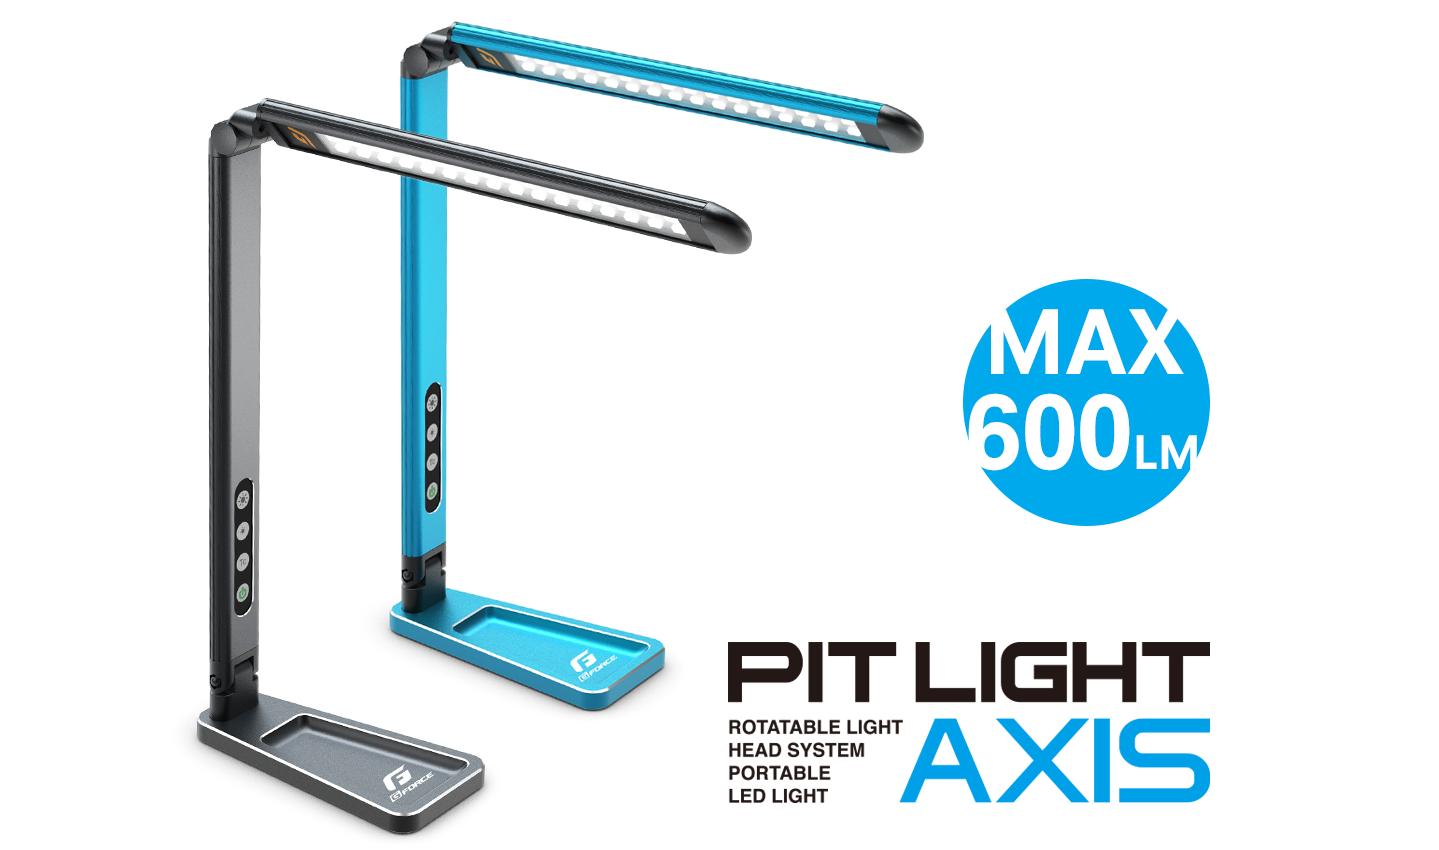 Pitlight AXIS